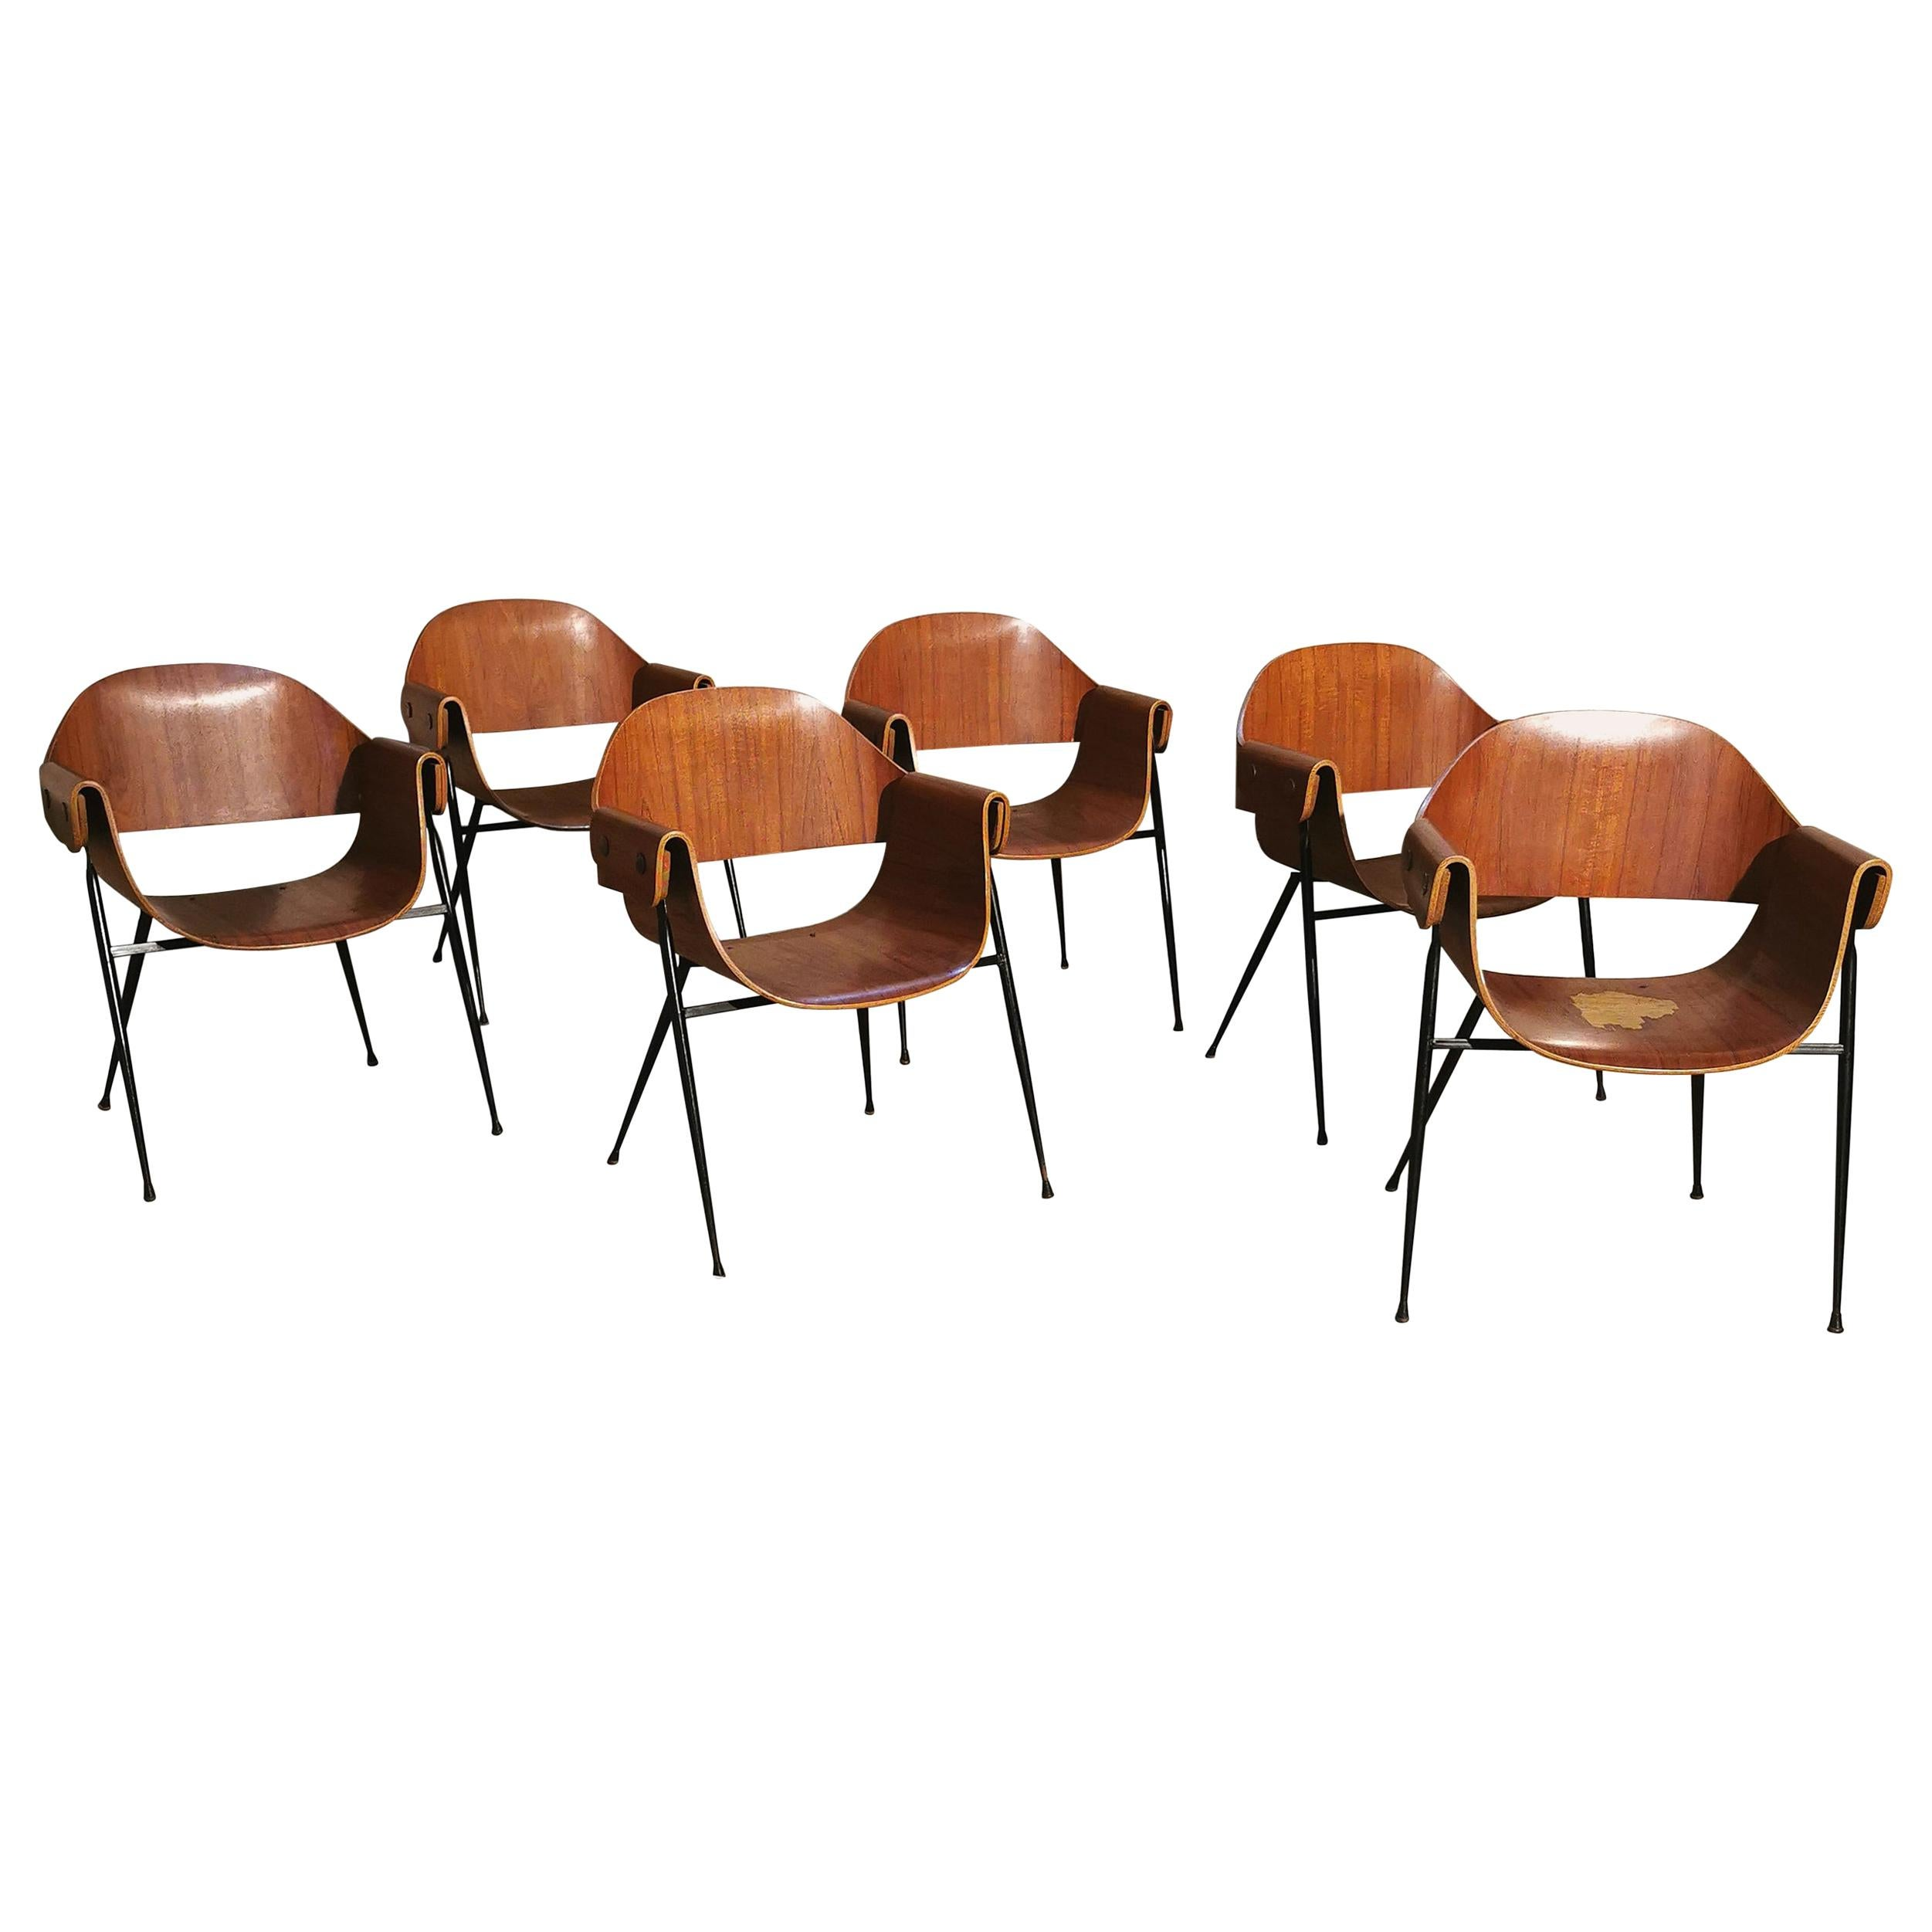 Mid Century Chairs by Carlo Ratti Wood Brass Enameled Metal Italy 1950s